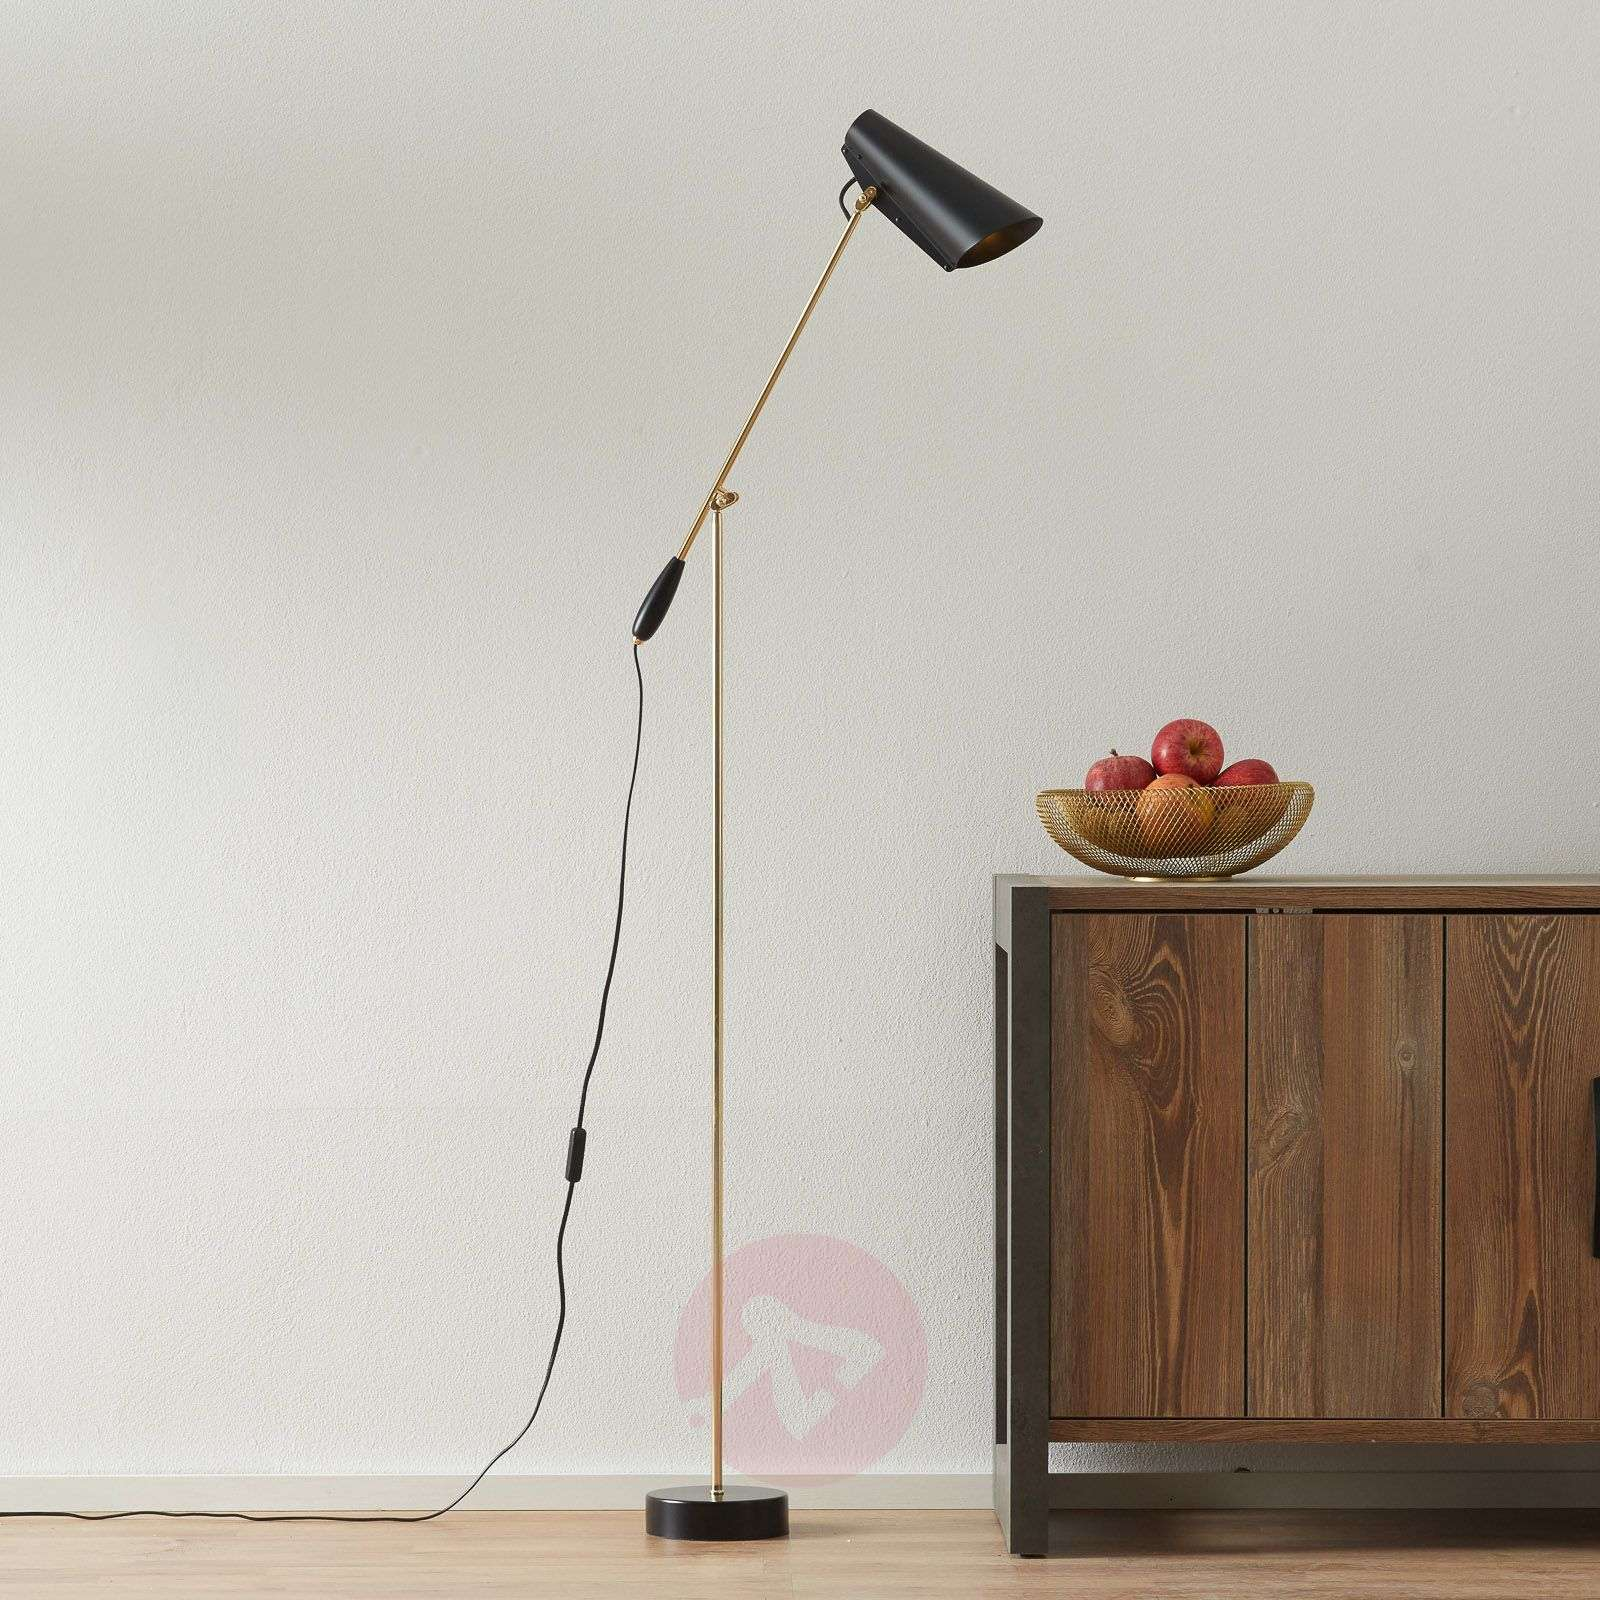 Retro floor lamp Birdy in black/brass-7013049-01